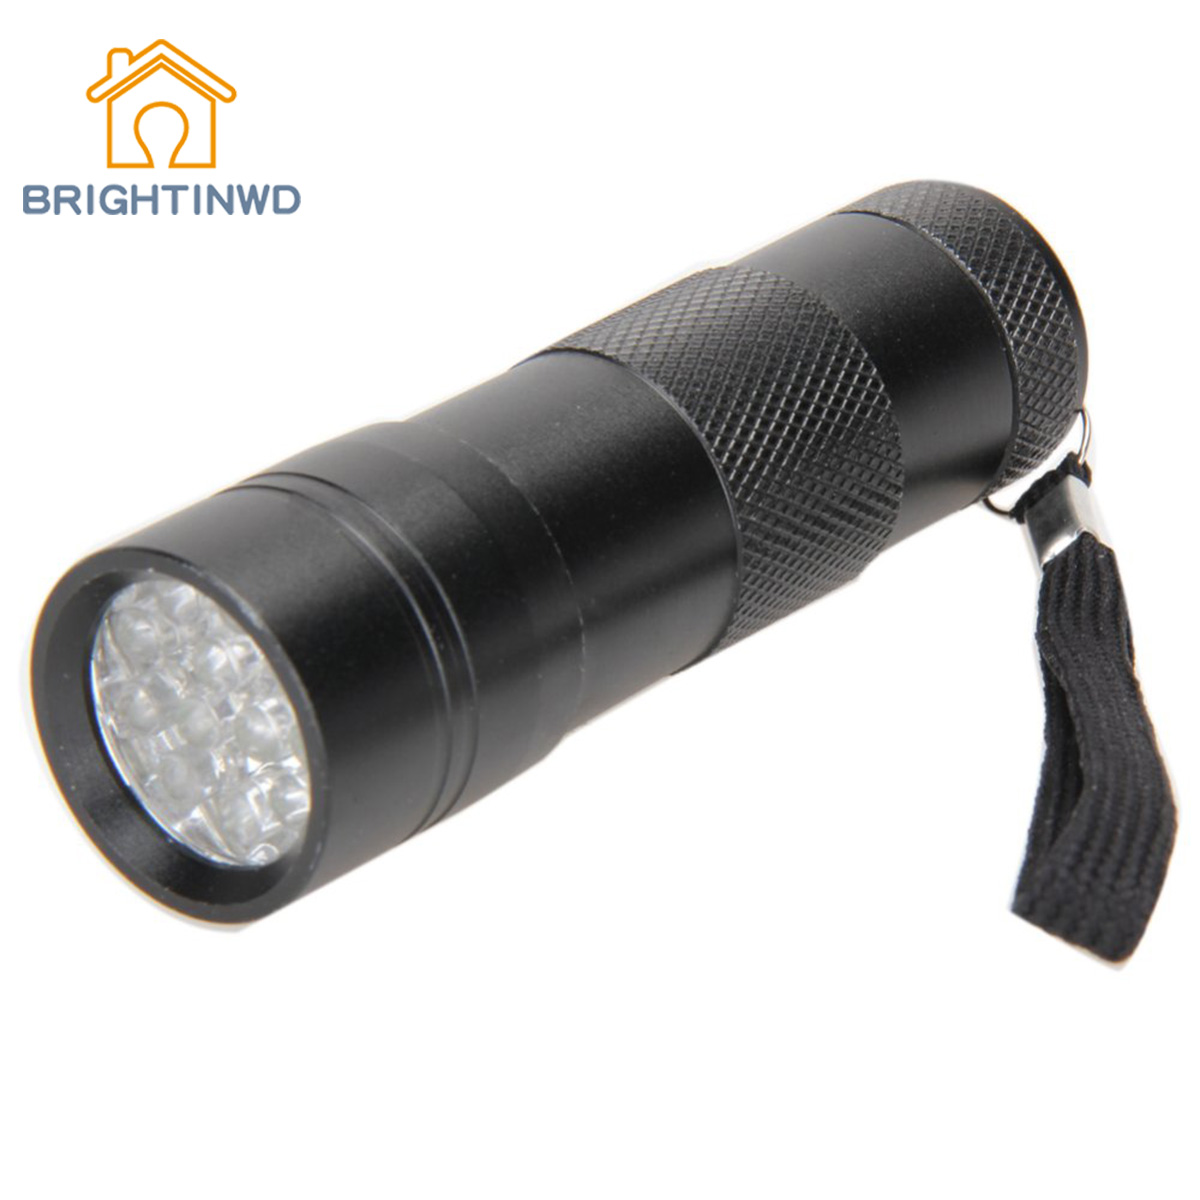 BRIGHTINWD 12 LED Mini UV Money Detector Ultra Violet Flashlight Torch Light Lamp ...